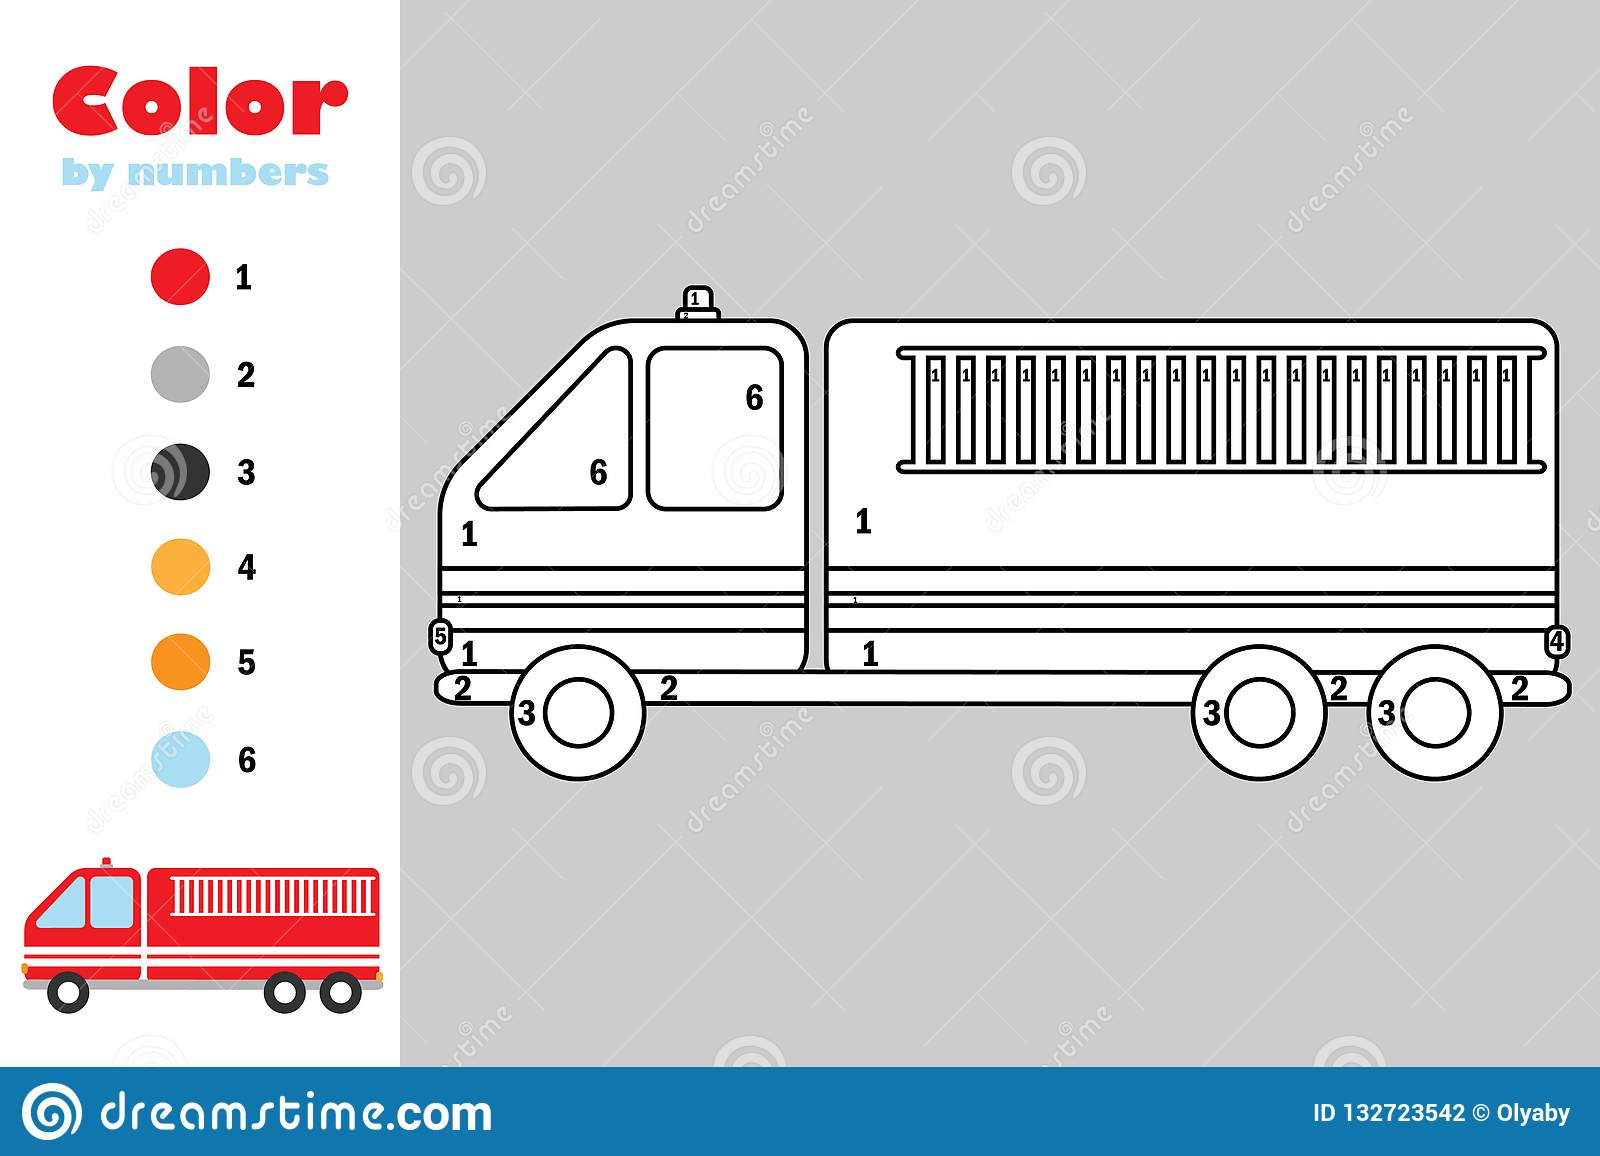 Fire Truck In Cartoon Style Color By Number Education